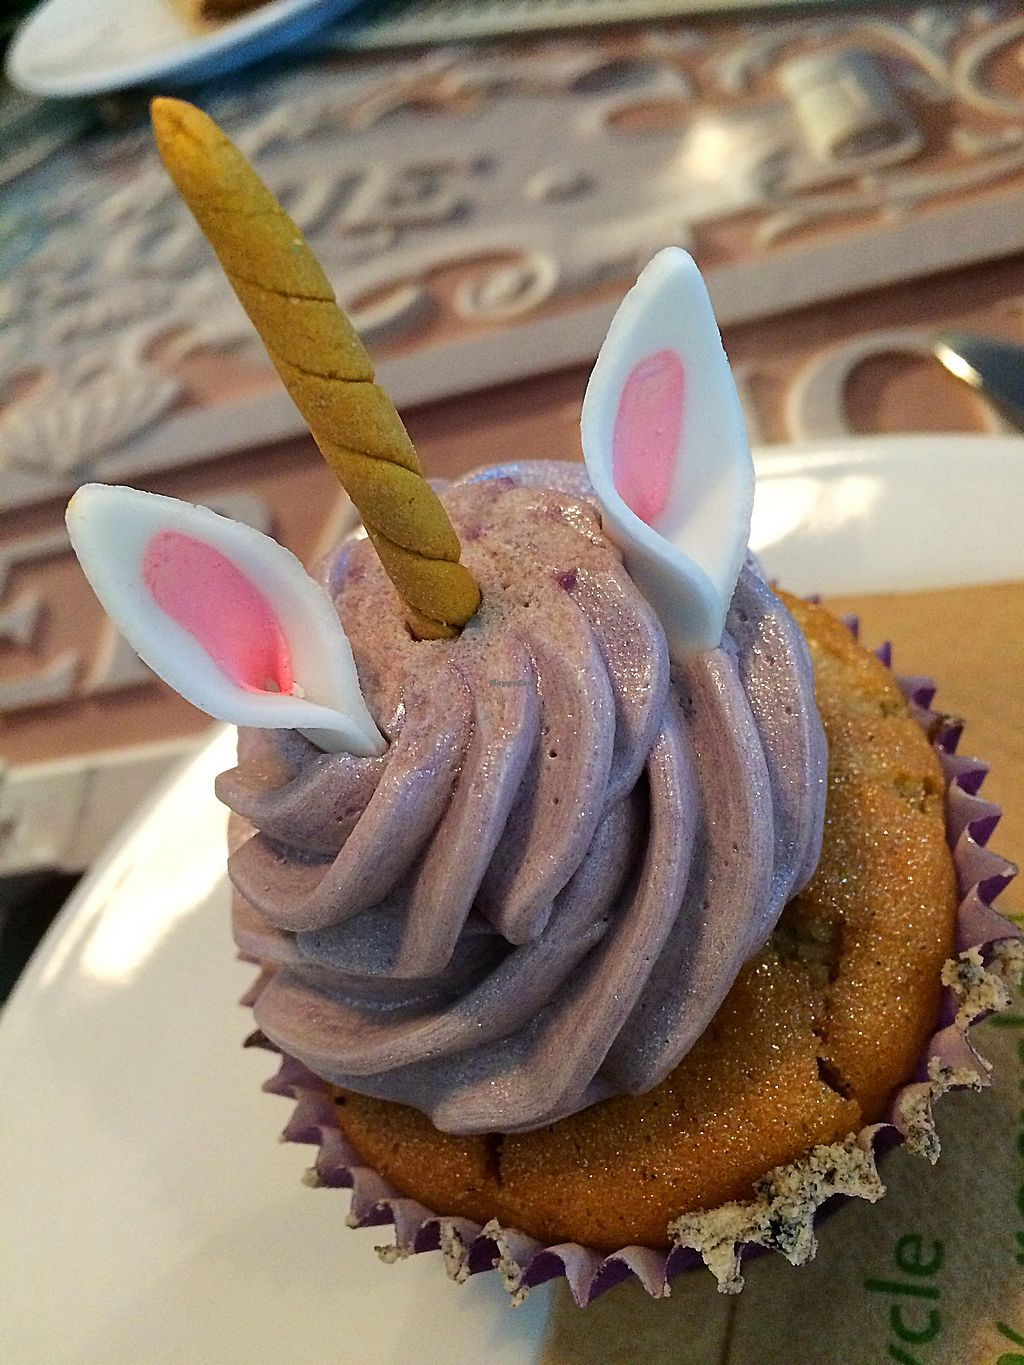 """Photo of Eat Street  by <a href=""""/members/profile/CiaraSlevin"""">CiaraSlevin</a> <br/>Cupcake  <br/> March 30, 2018  - <a href='/contact/abuse/image/107310/378126'>Report</a>"""